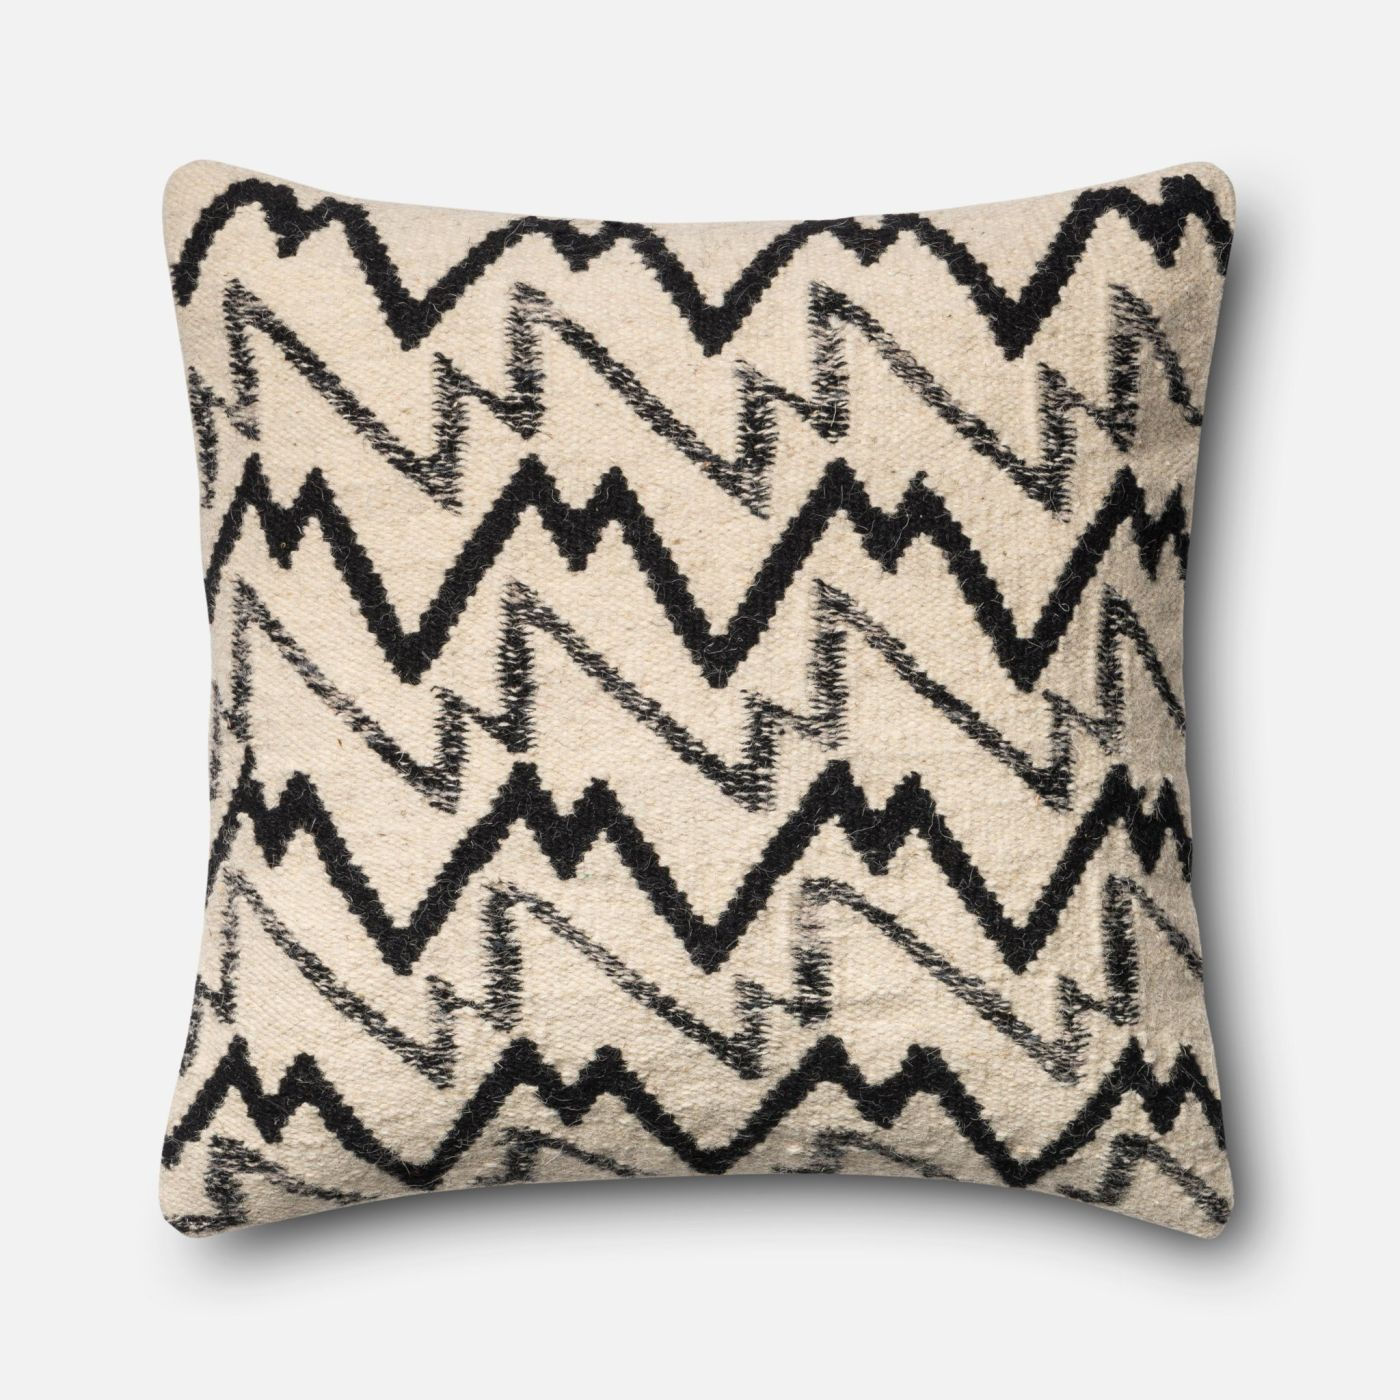 Black And Ivory Throw Pillows : Loloi Rugs Loloi Black / Ivory Decorative Throw Pillow (P0365) DSETP0365BLIVPIL3. Only USD139.00 ...